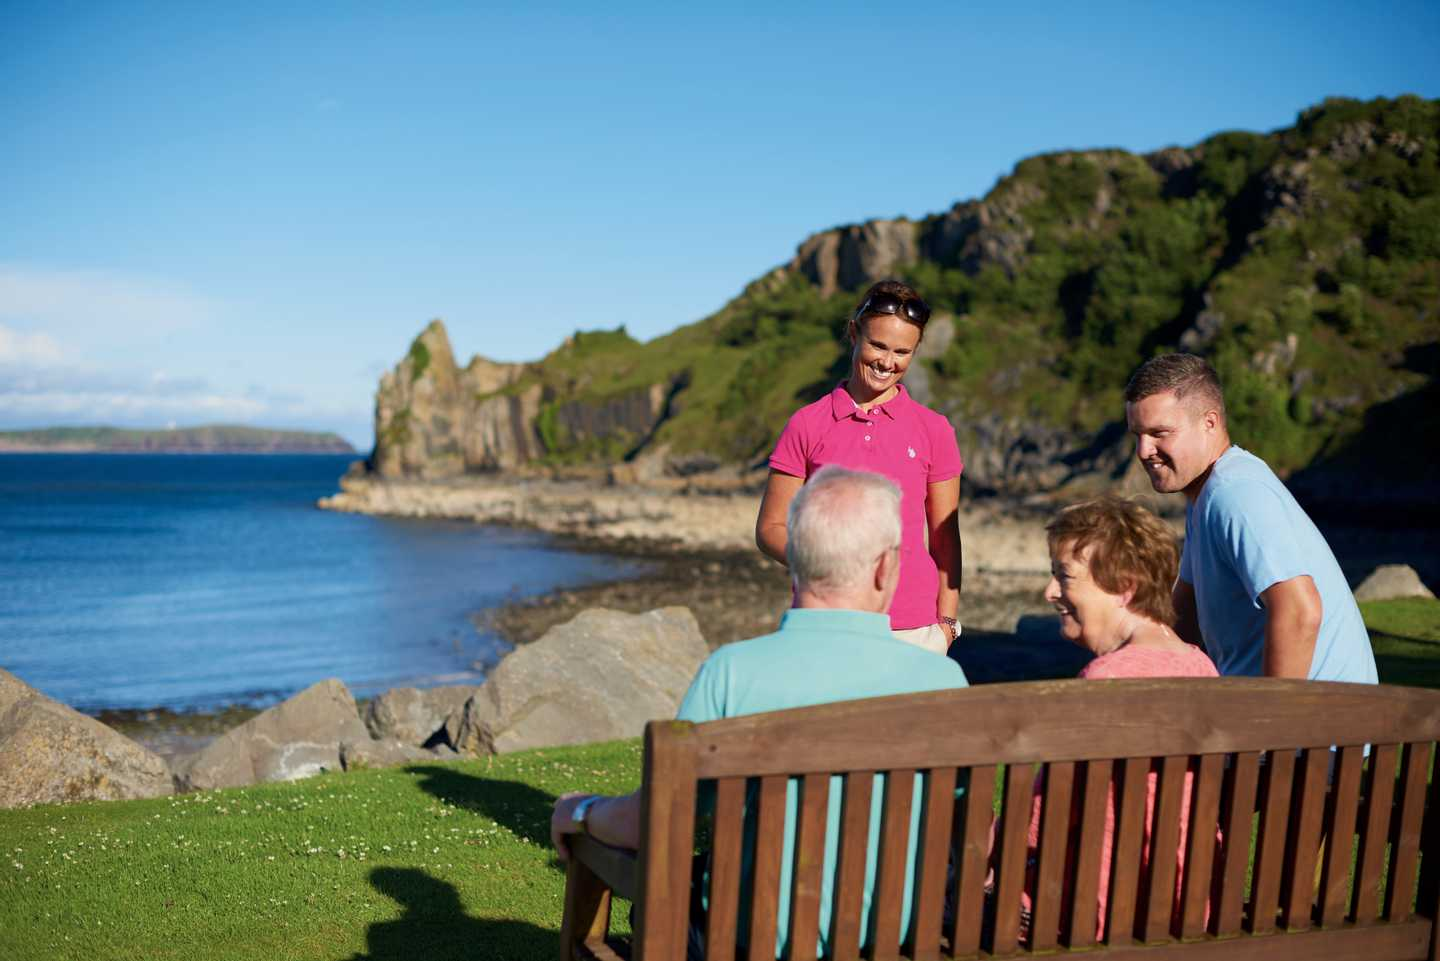 Guests sitting on a bench looking out to sea